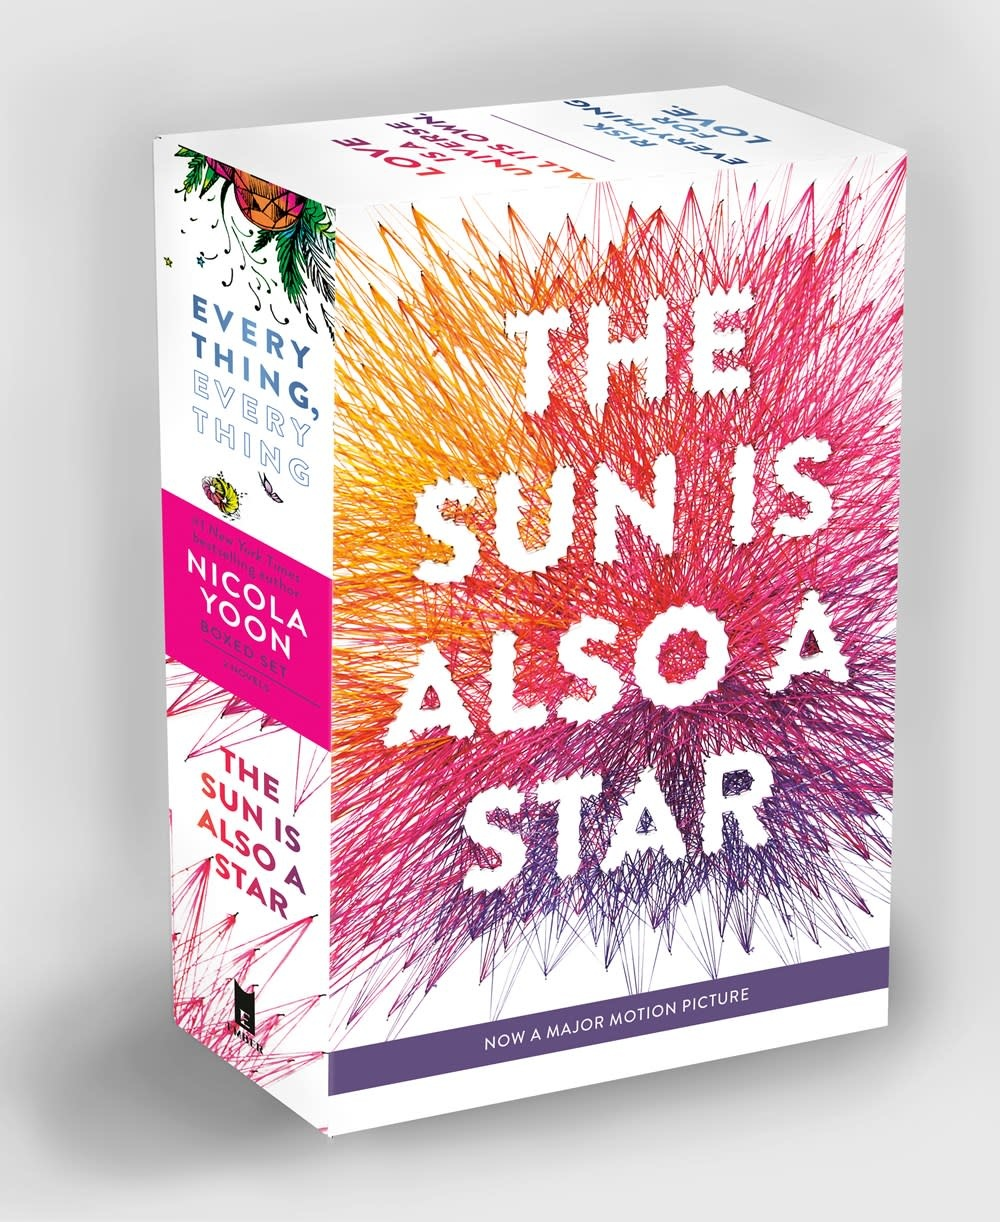 Ember Nicola Yoon Boxed Set (The Sun is Also a Star & Everything, Everything)